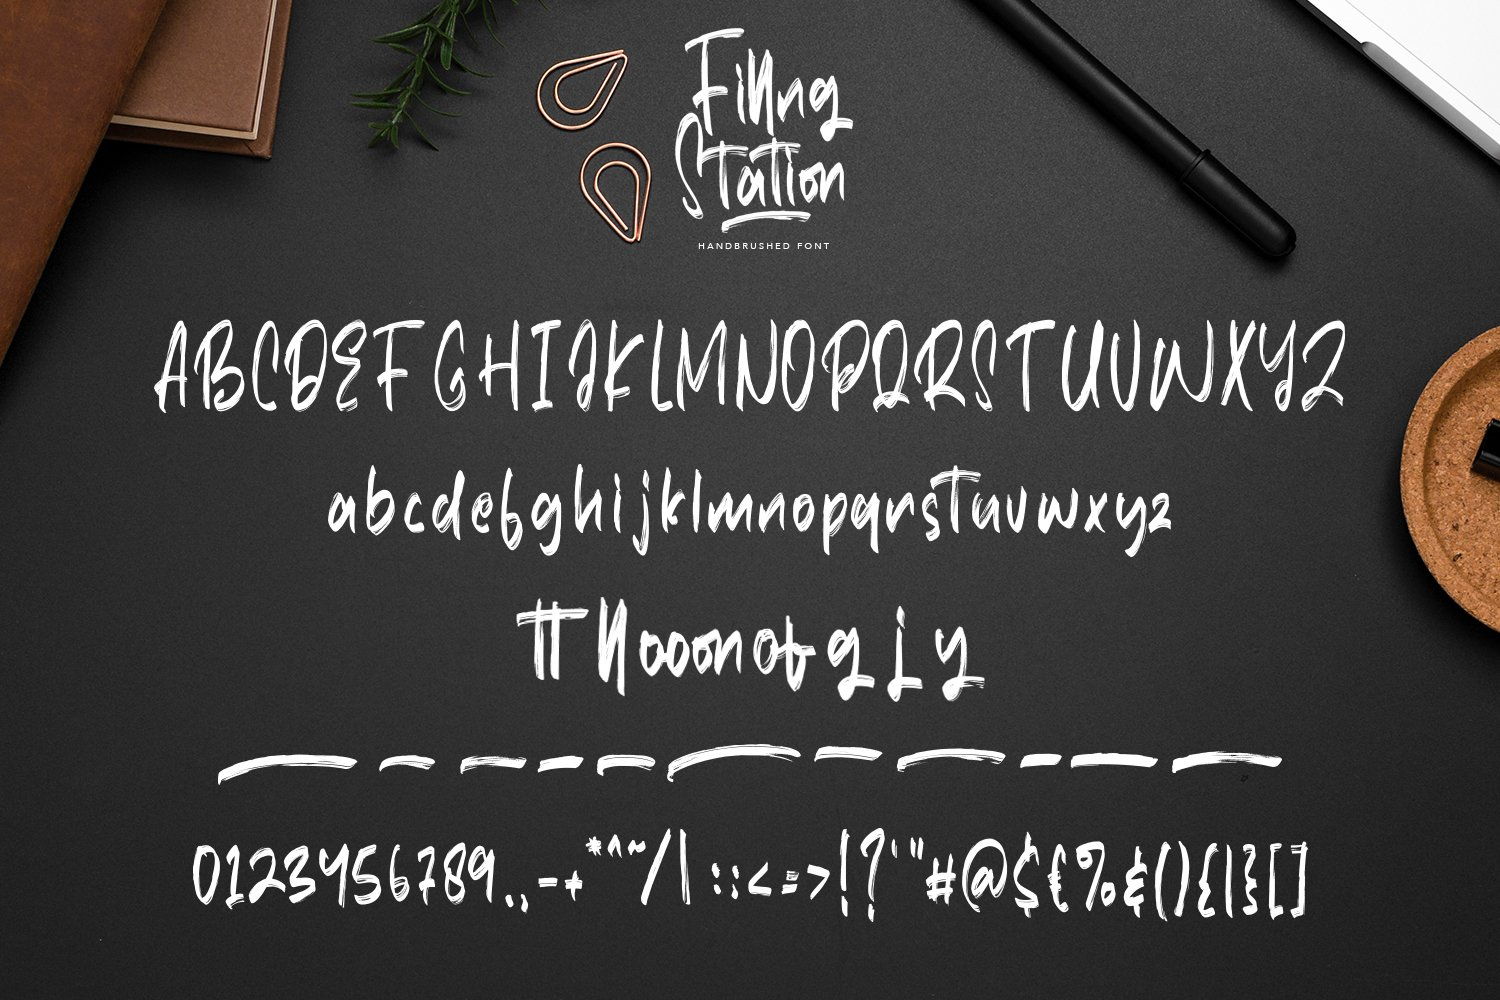 Filling Station - Brush Script Fonts example image 6